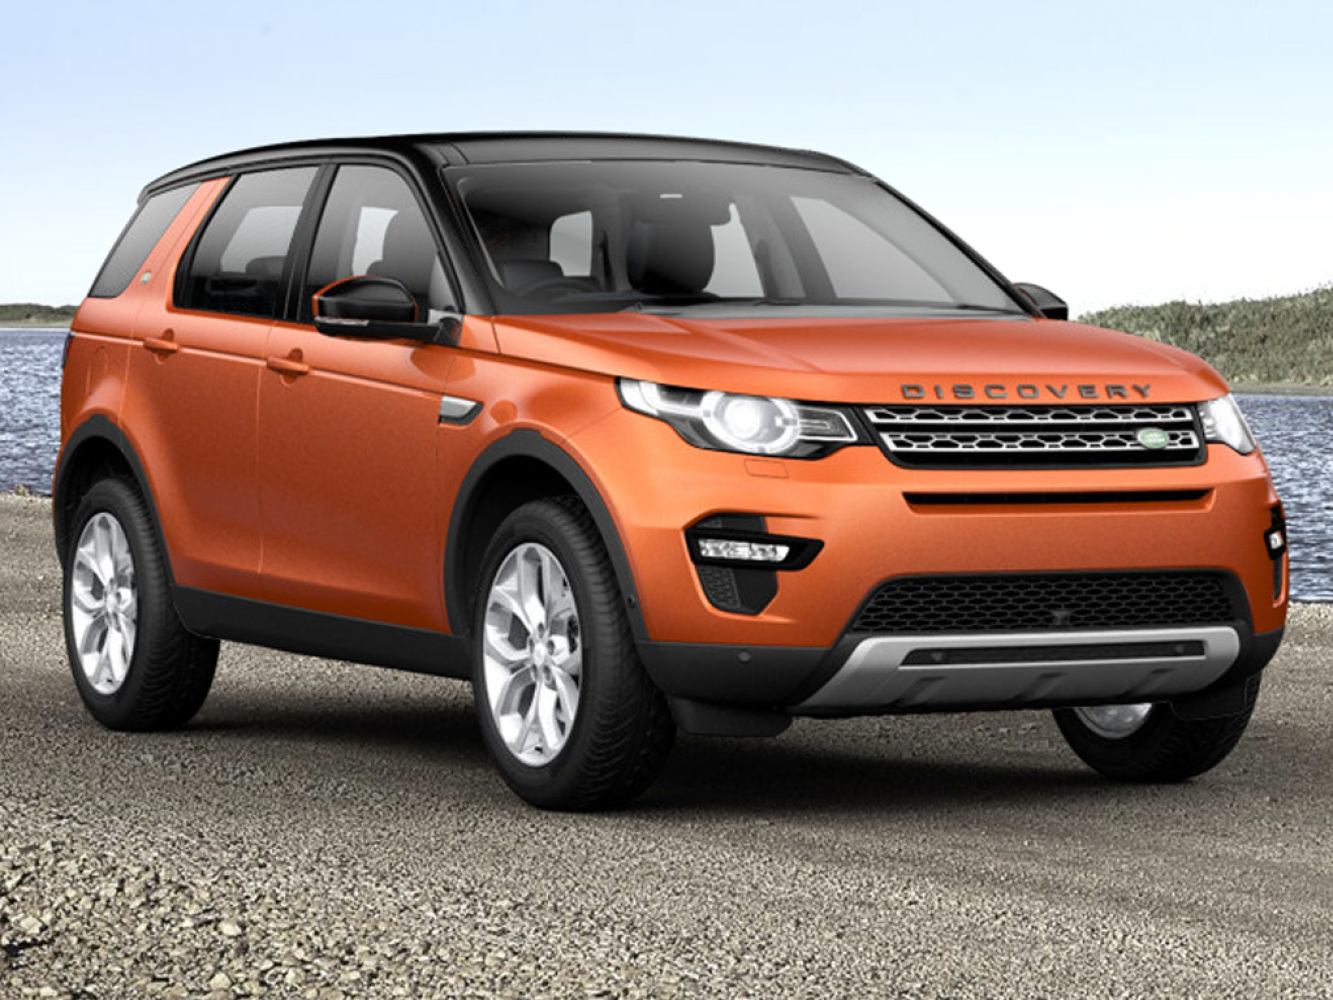 New Land Rover Discovery Sport 2 0 Ed4 Pure 5dr 2wd 5